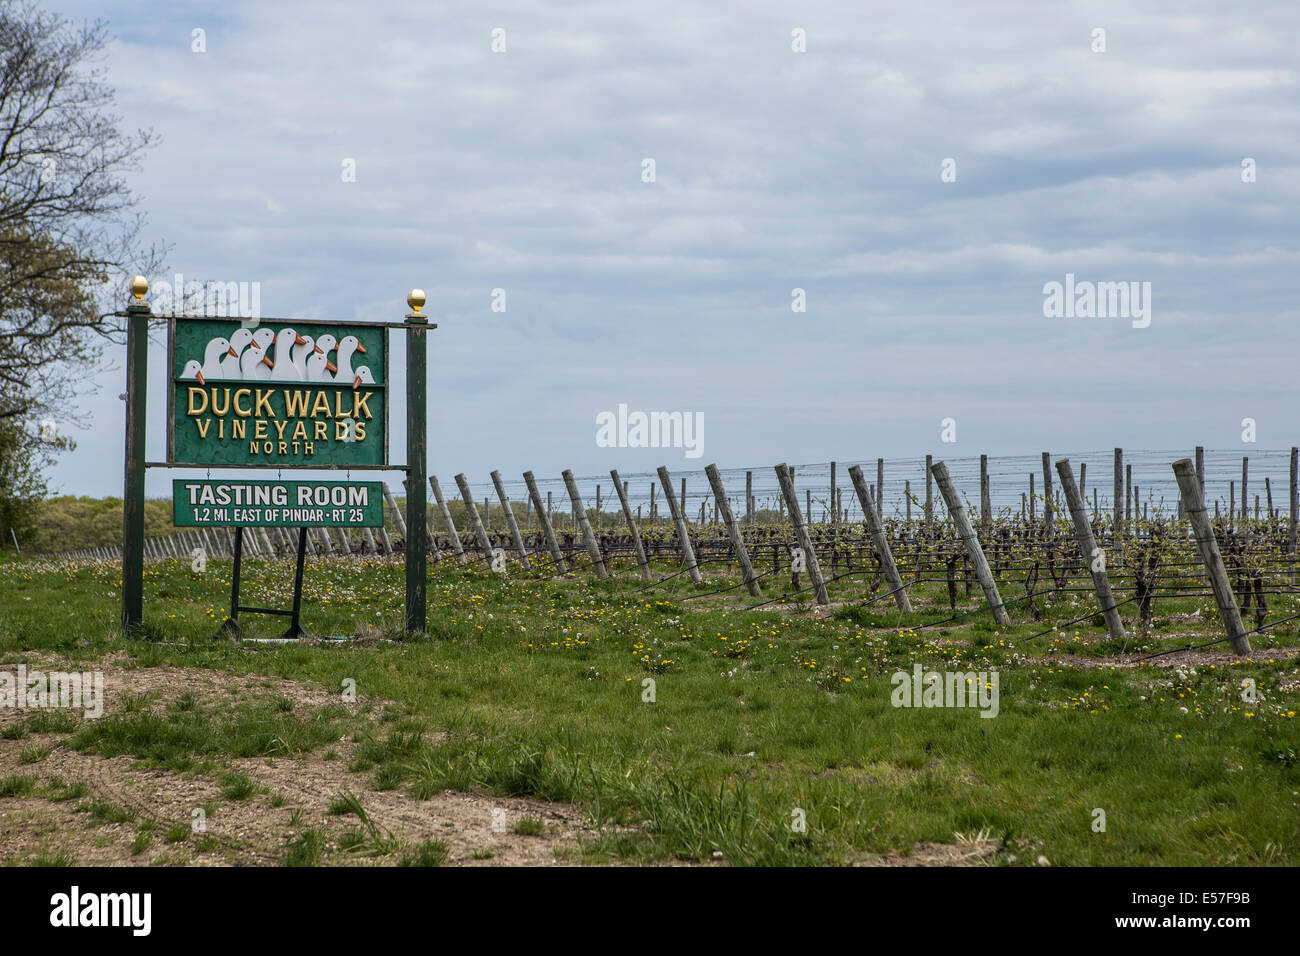 The Duck Walk vineyard is pictured in Southold, New York - Stock Image